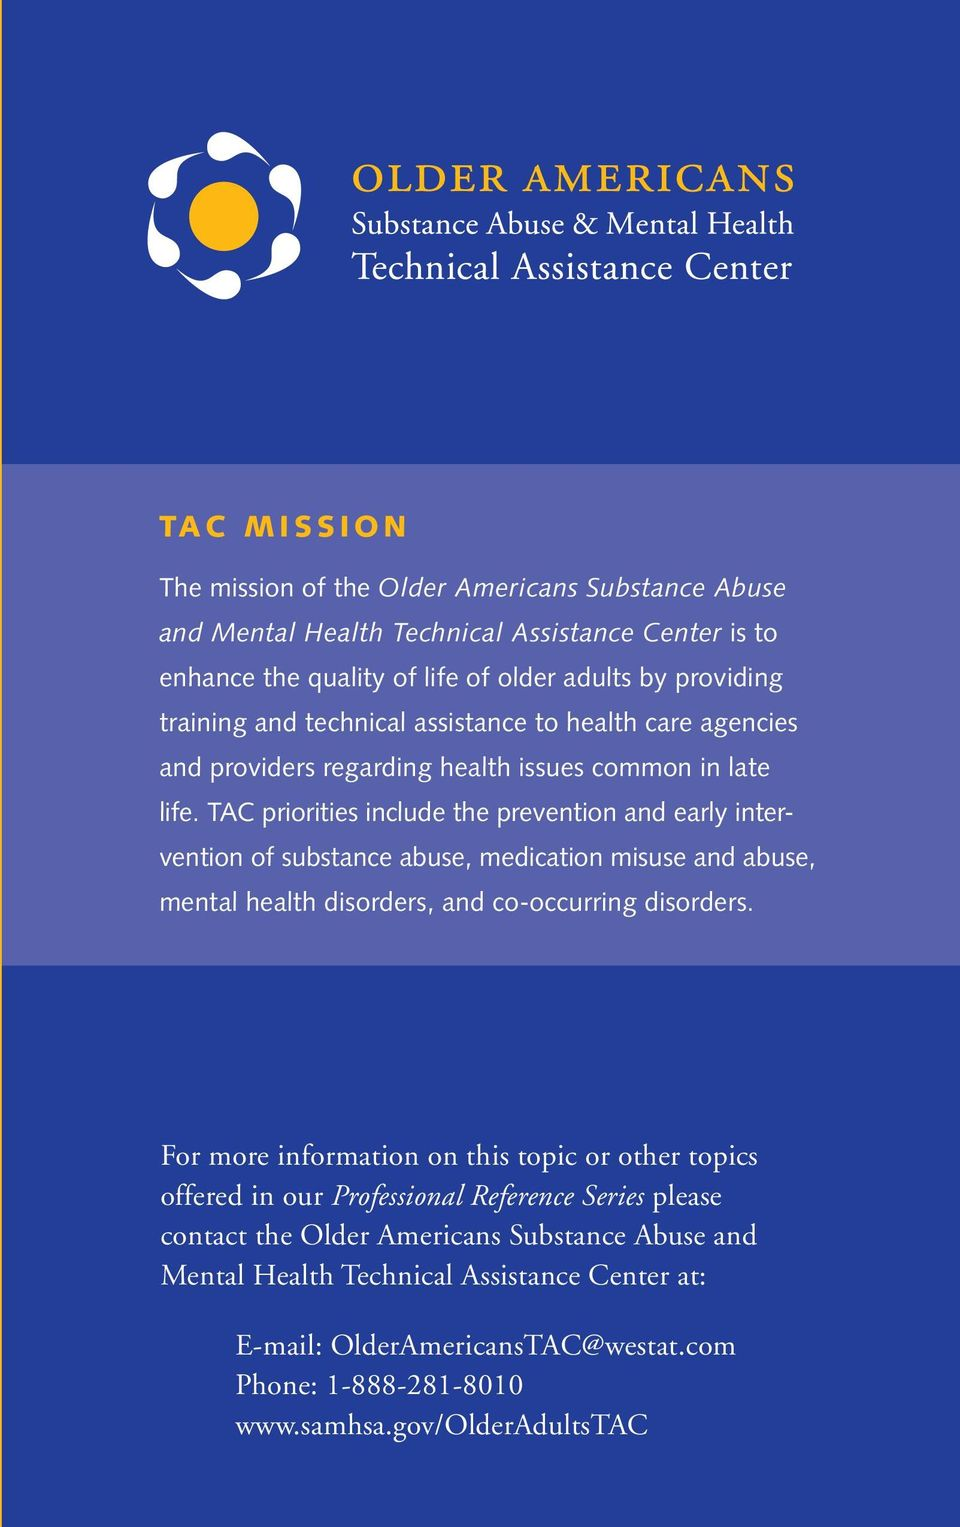 TAC priorities include the prevention and early intervention of substance abuse, medication misuse and abuse, mental health disorders, and co-occurring disorders.